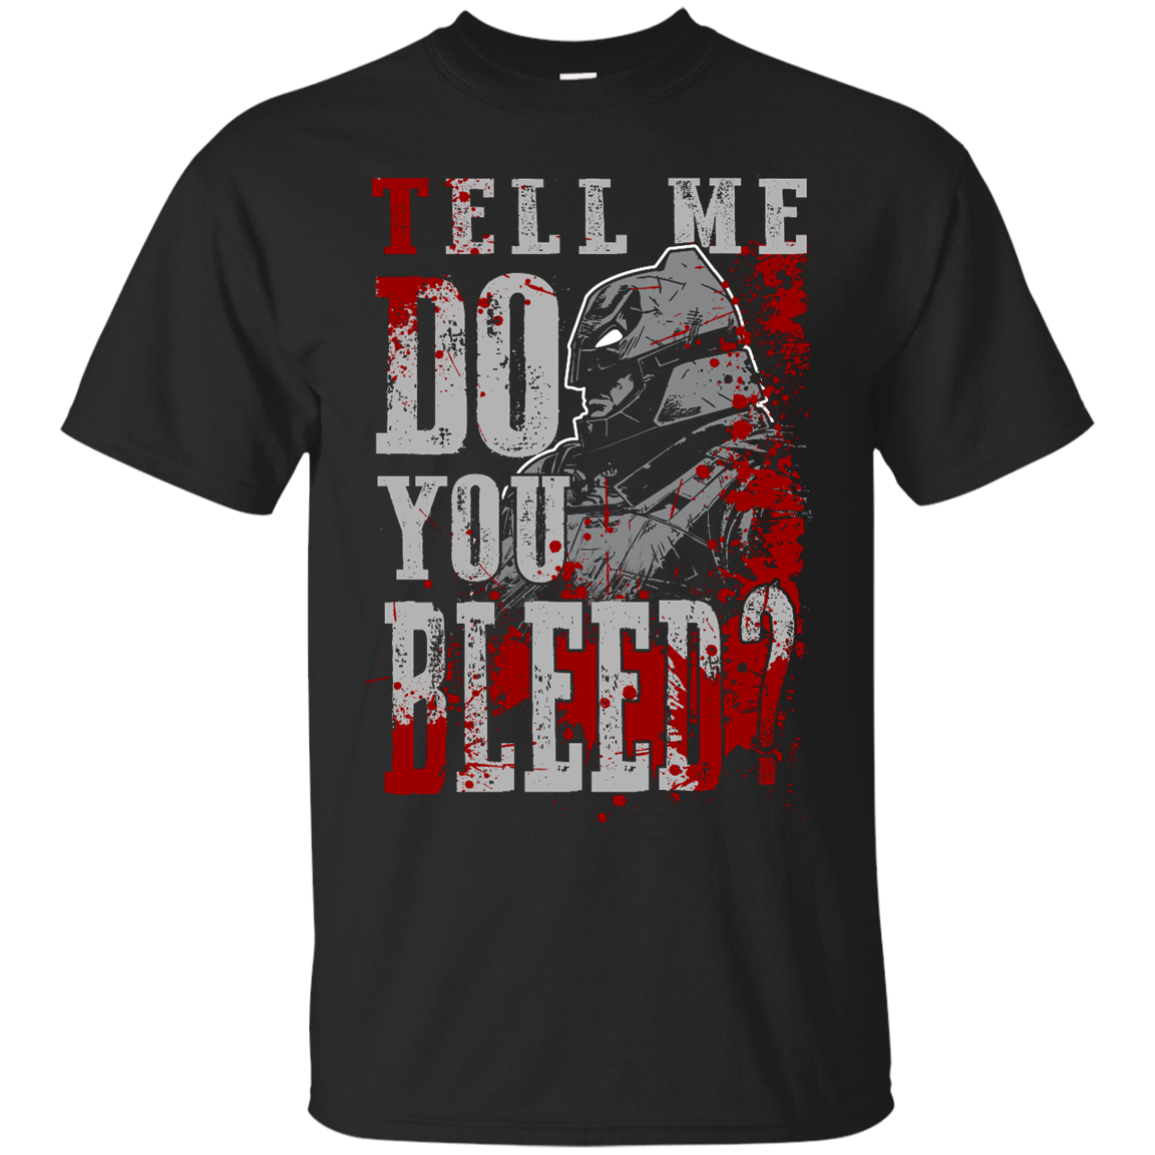 Do You Bleed LIMITED EDITION